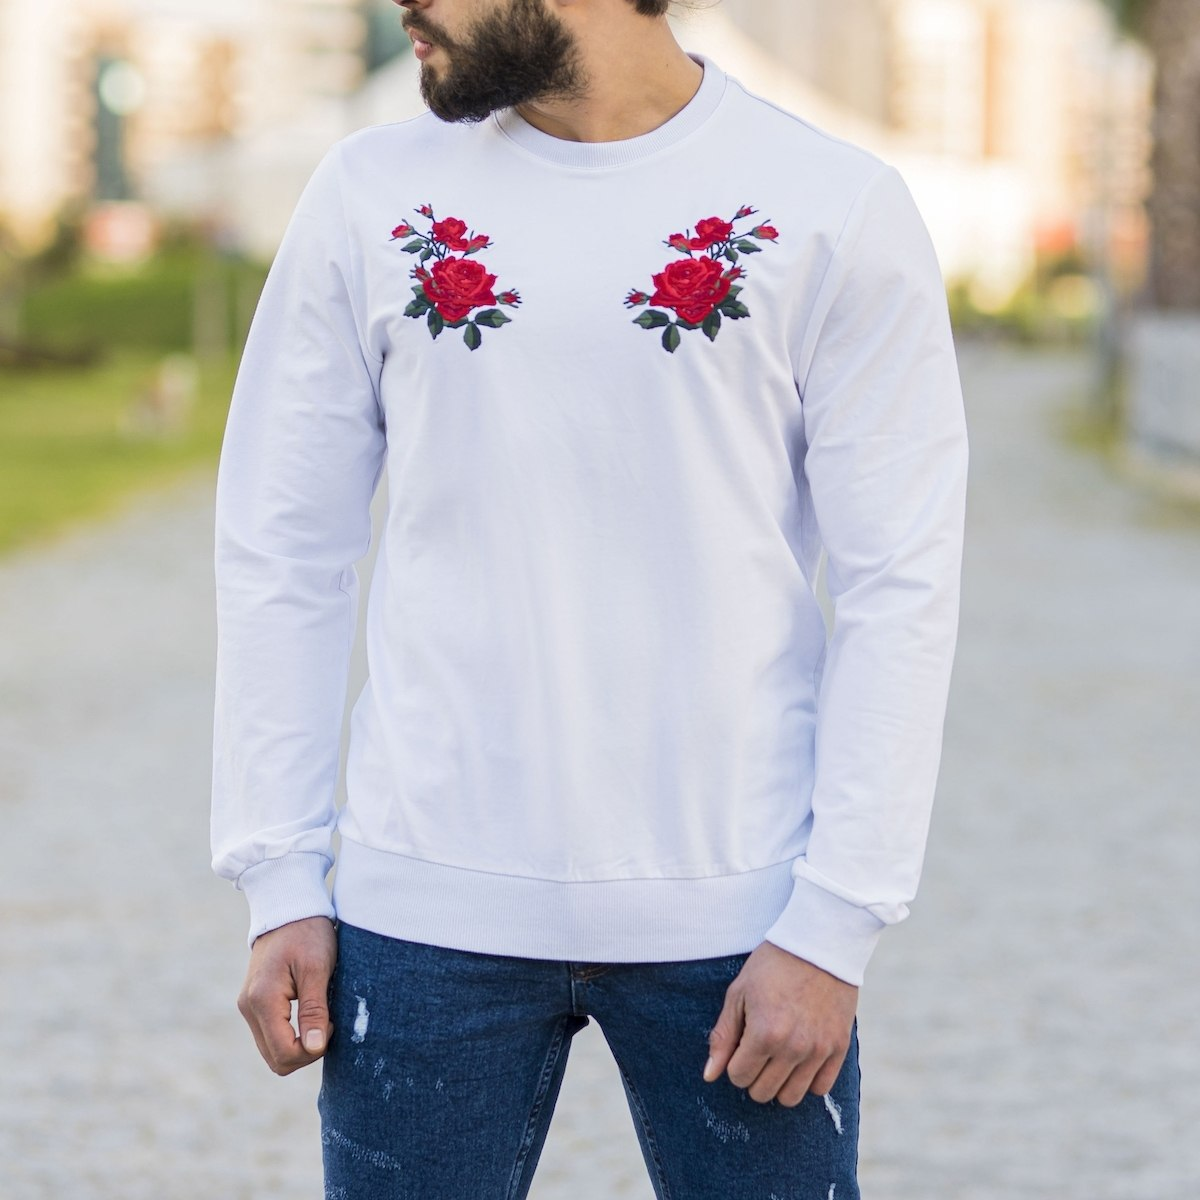 White Sweatshirt With Rose...